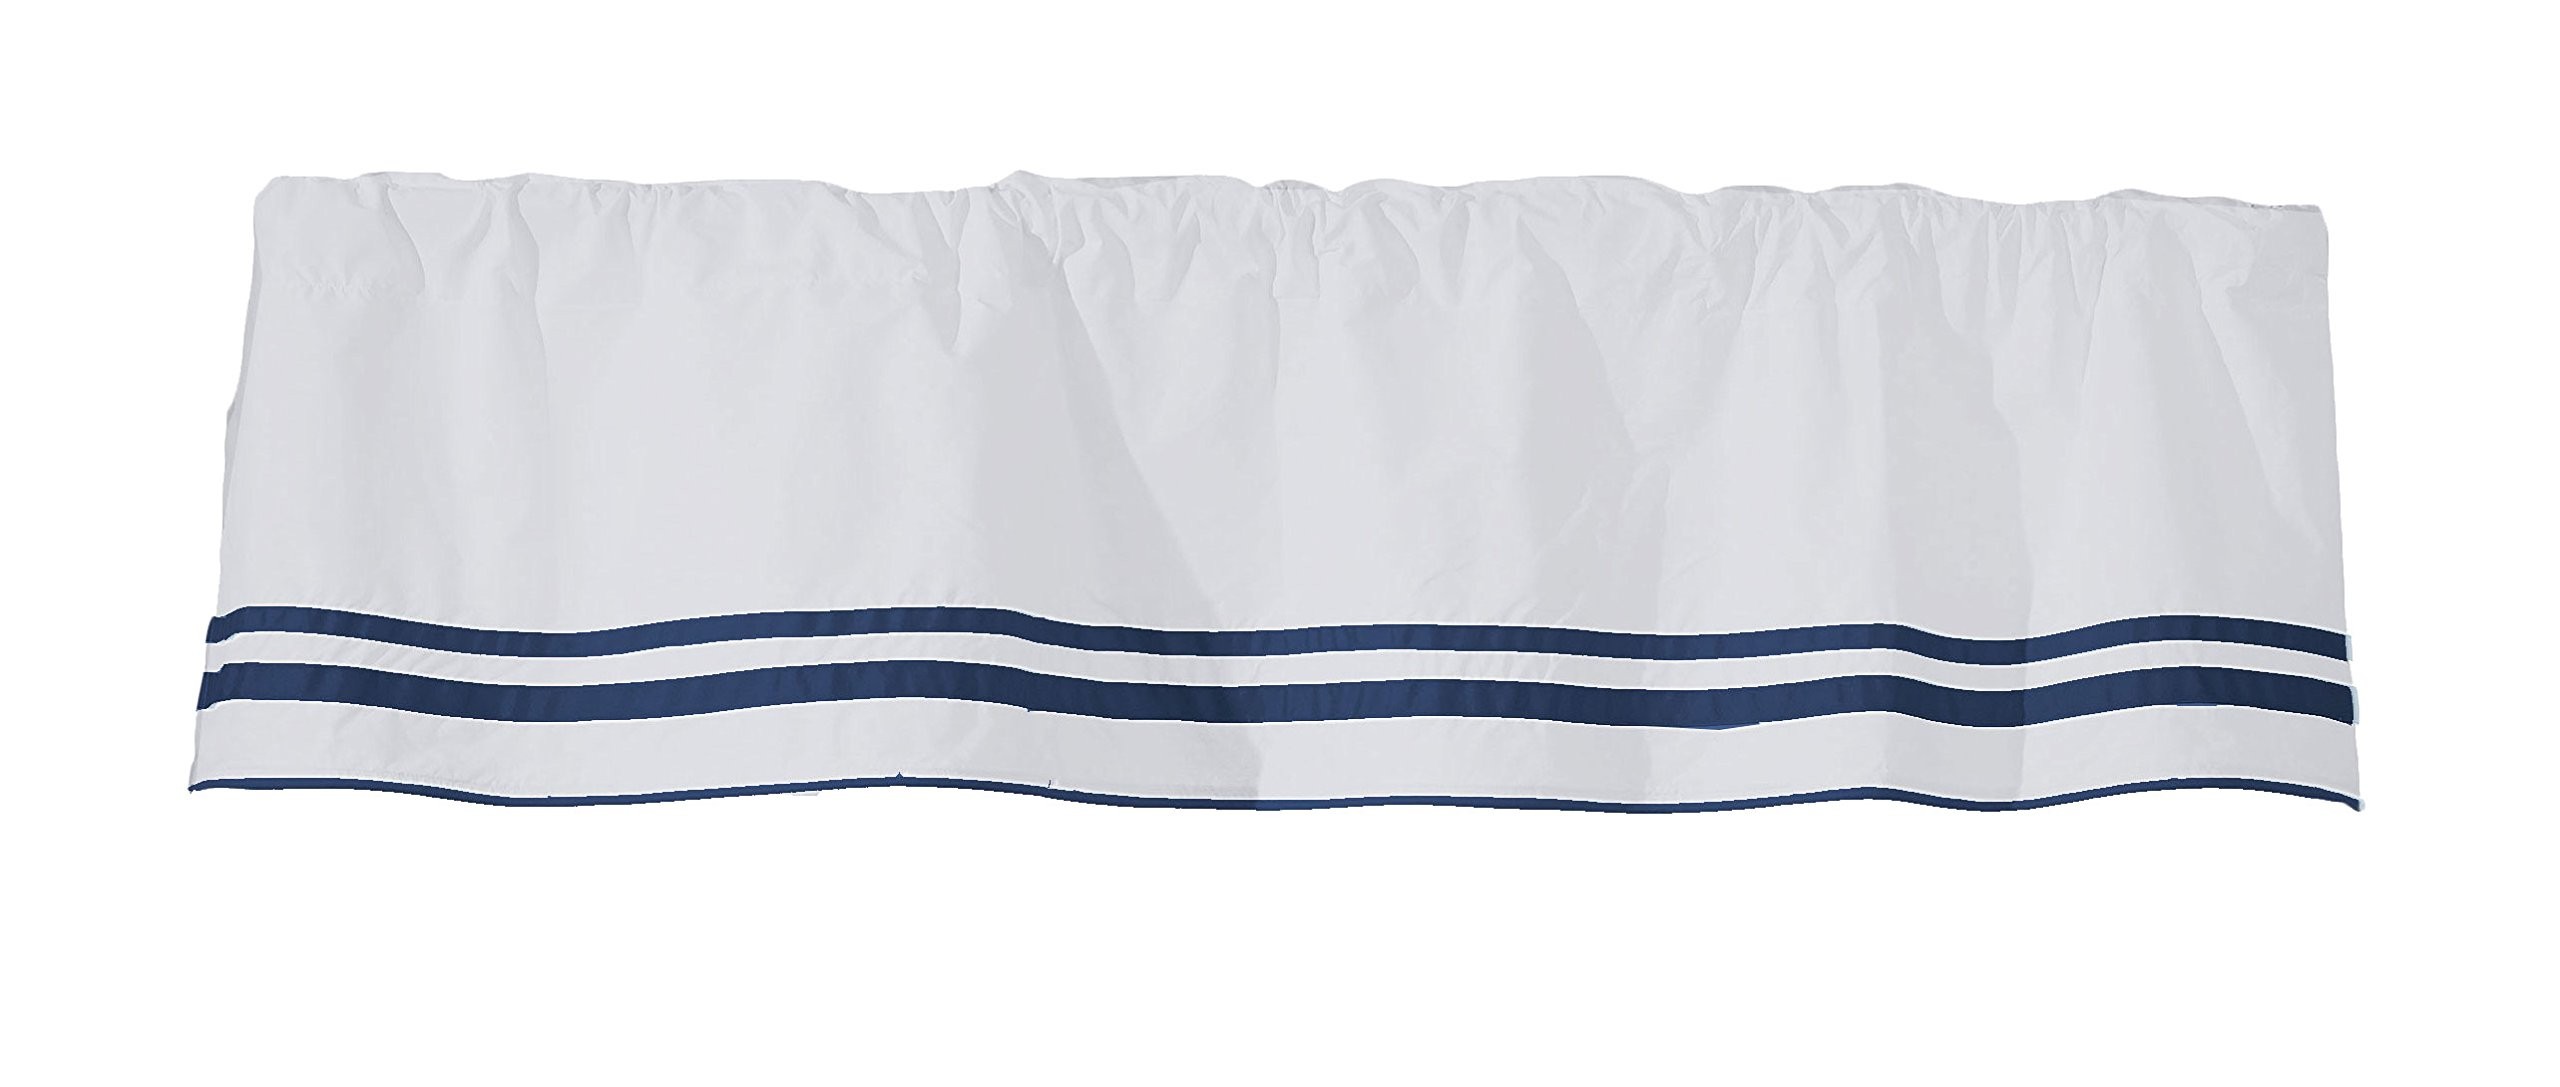 Baby Doll Bedding Soho Window Valance, Navy